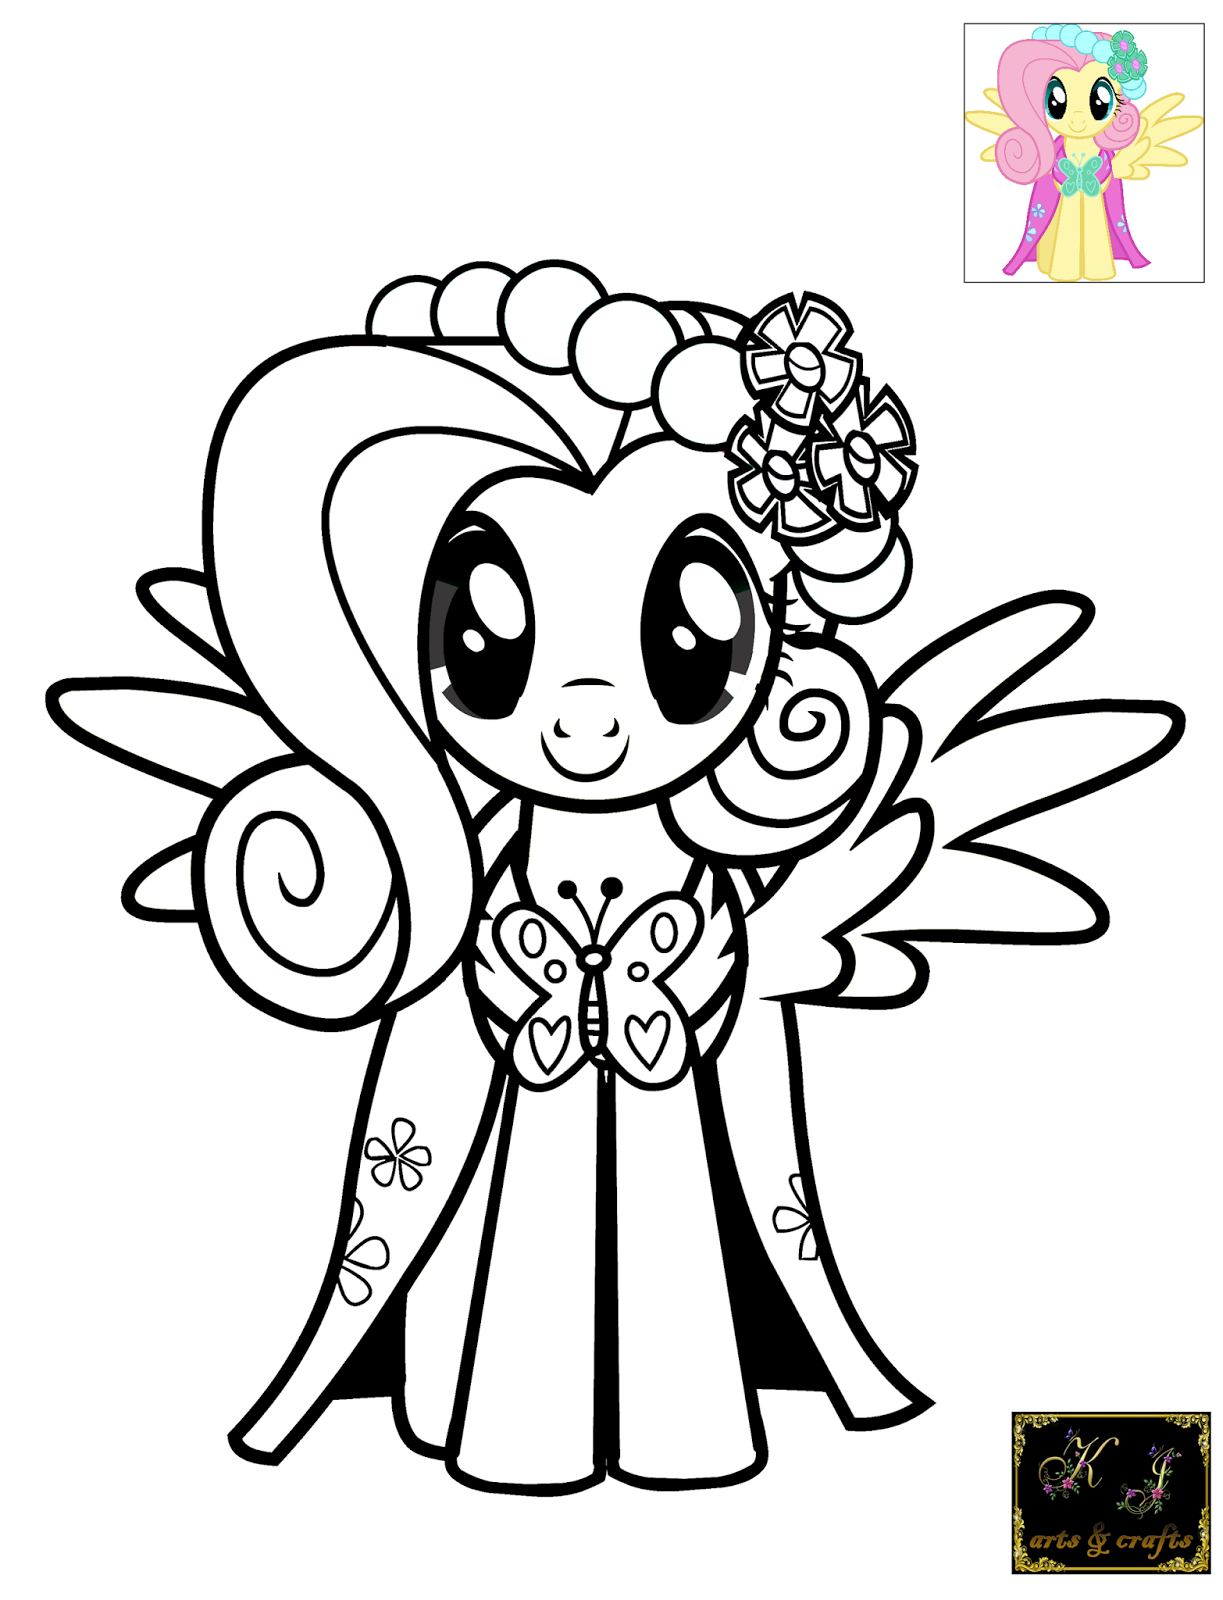 fluttershy coloring page - fluttershy coloring pages coloring home